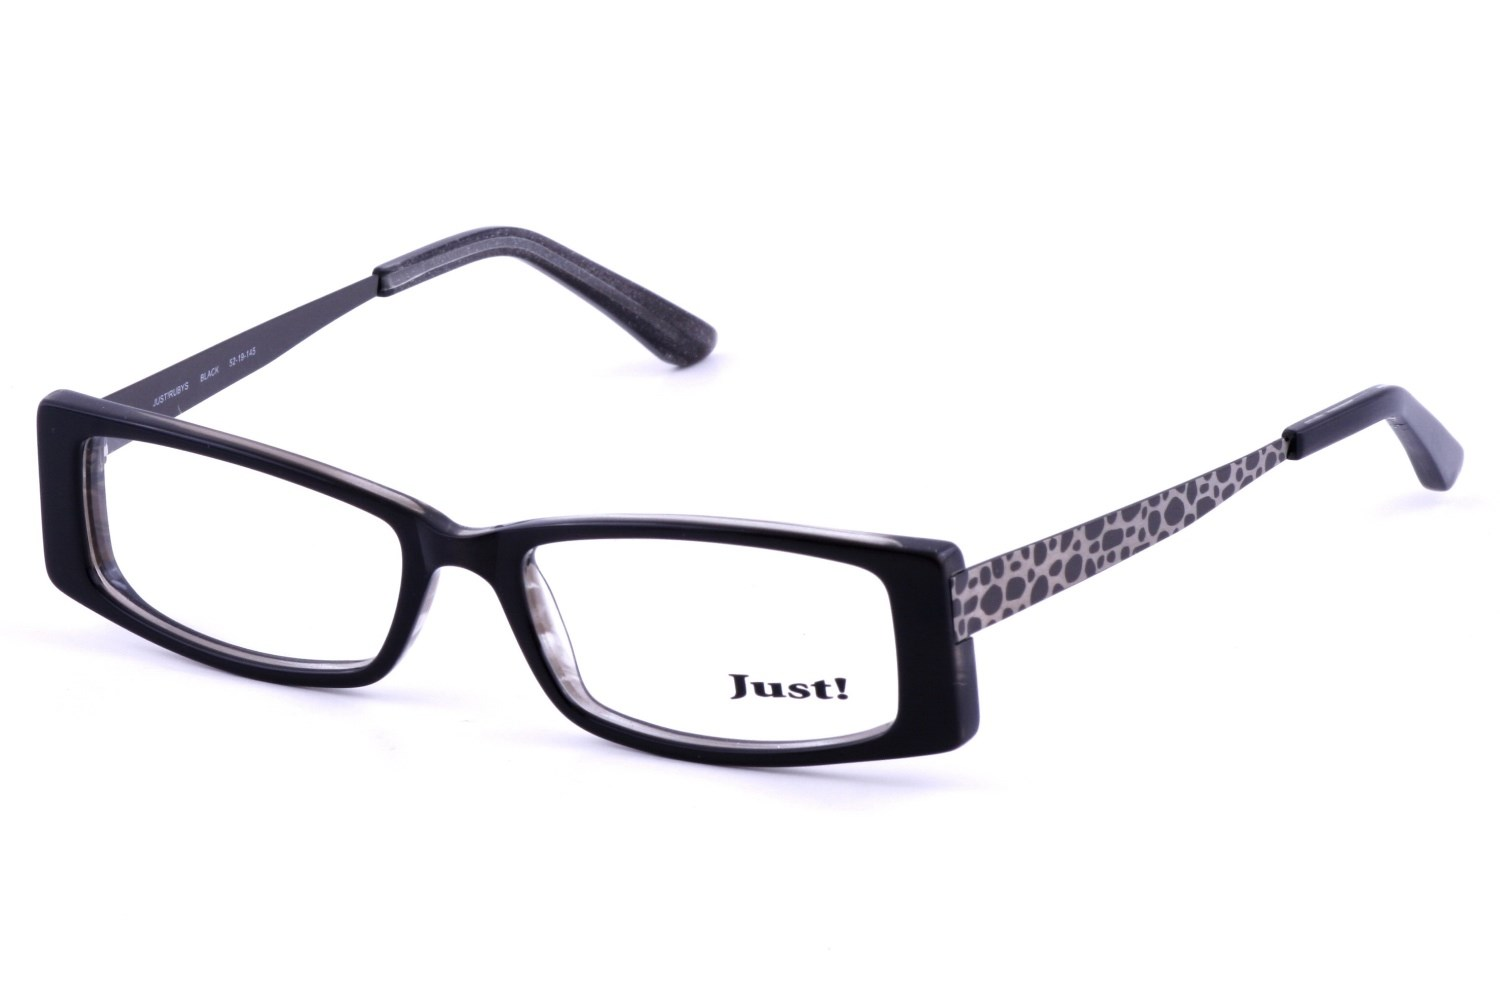 Just Rubys Prescription Eyeglasses Frames